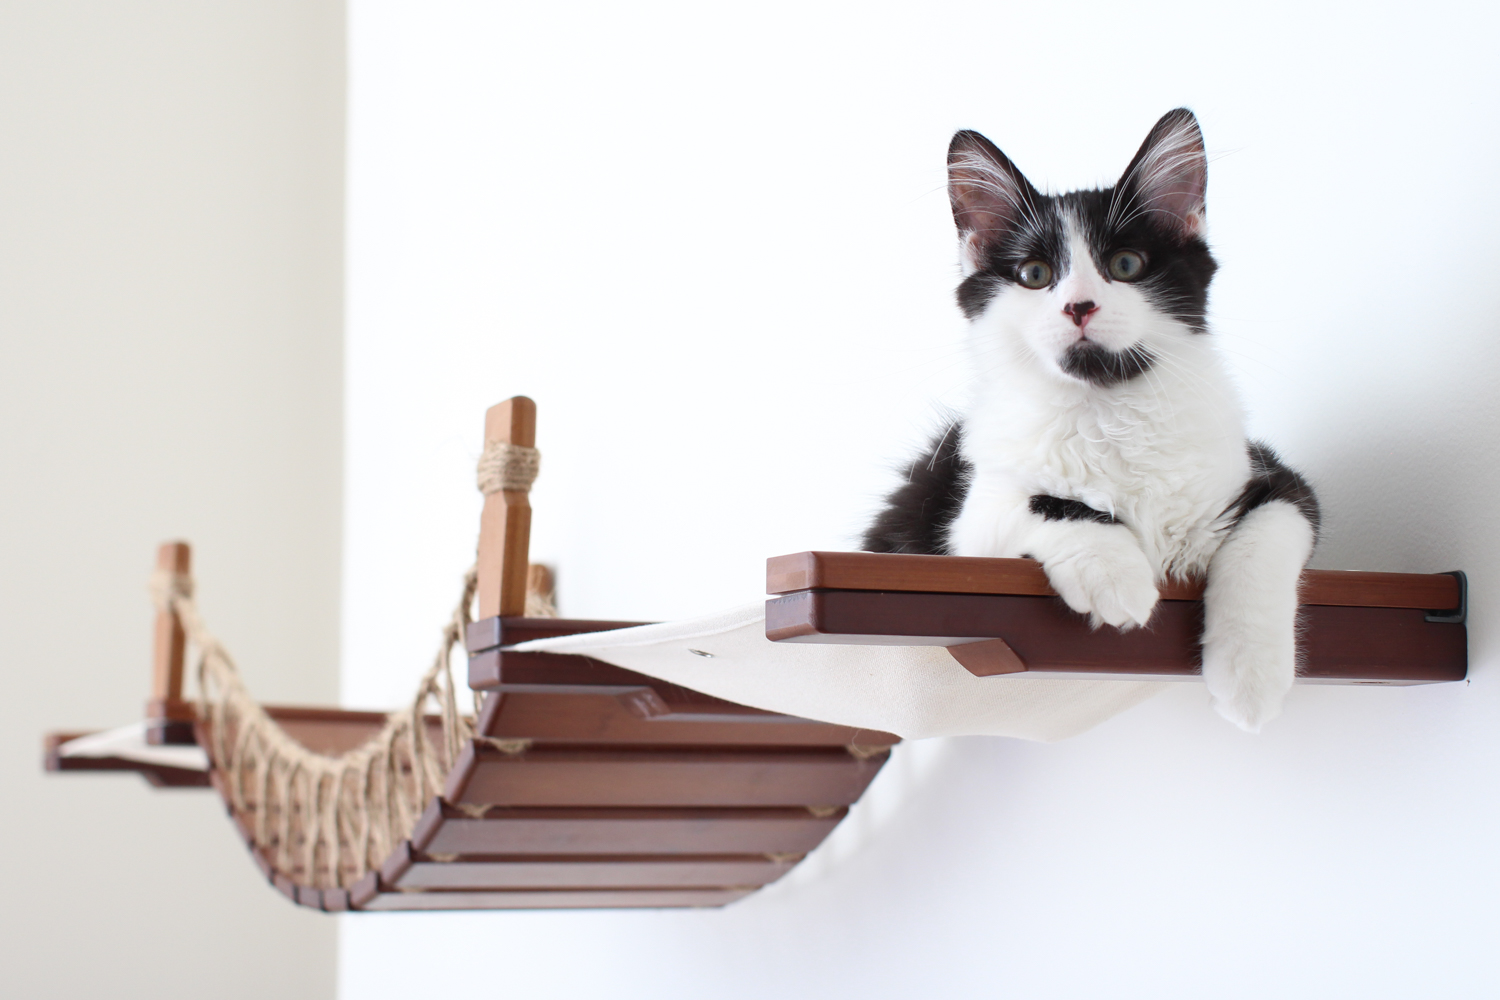 This photo displays a cat on the Bridge Lounge in English Chestnut, a dark brown stain, with Natural fabric, a light tan color.